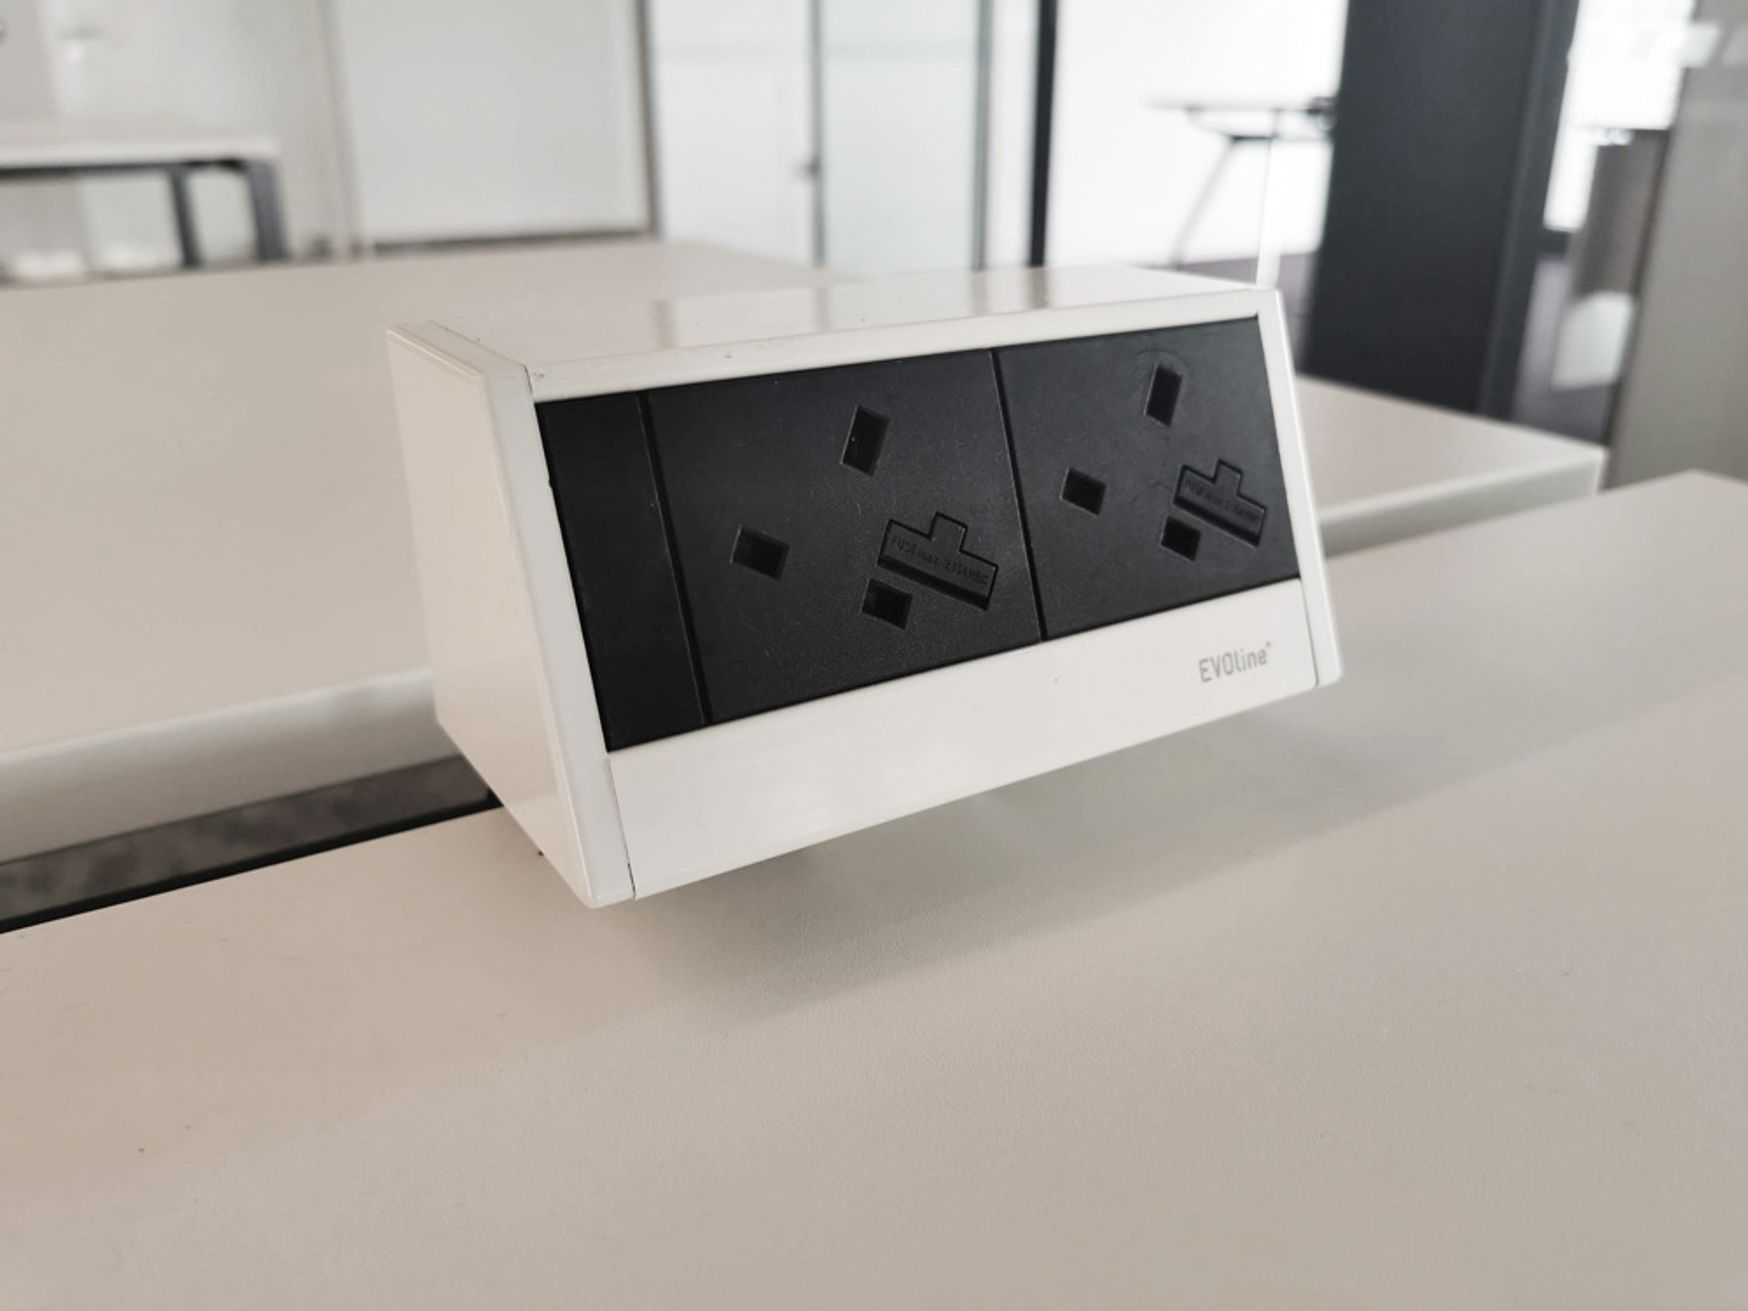 Used Desk mounted 'Evoline' double power modules.